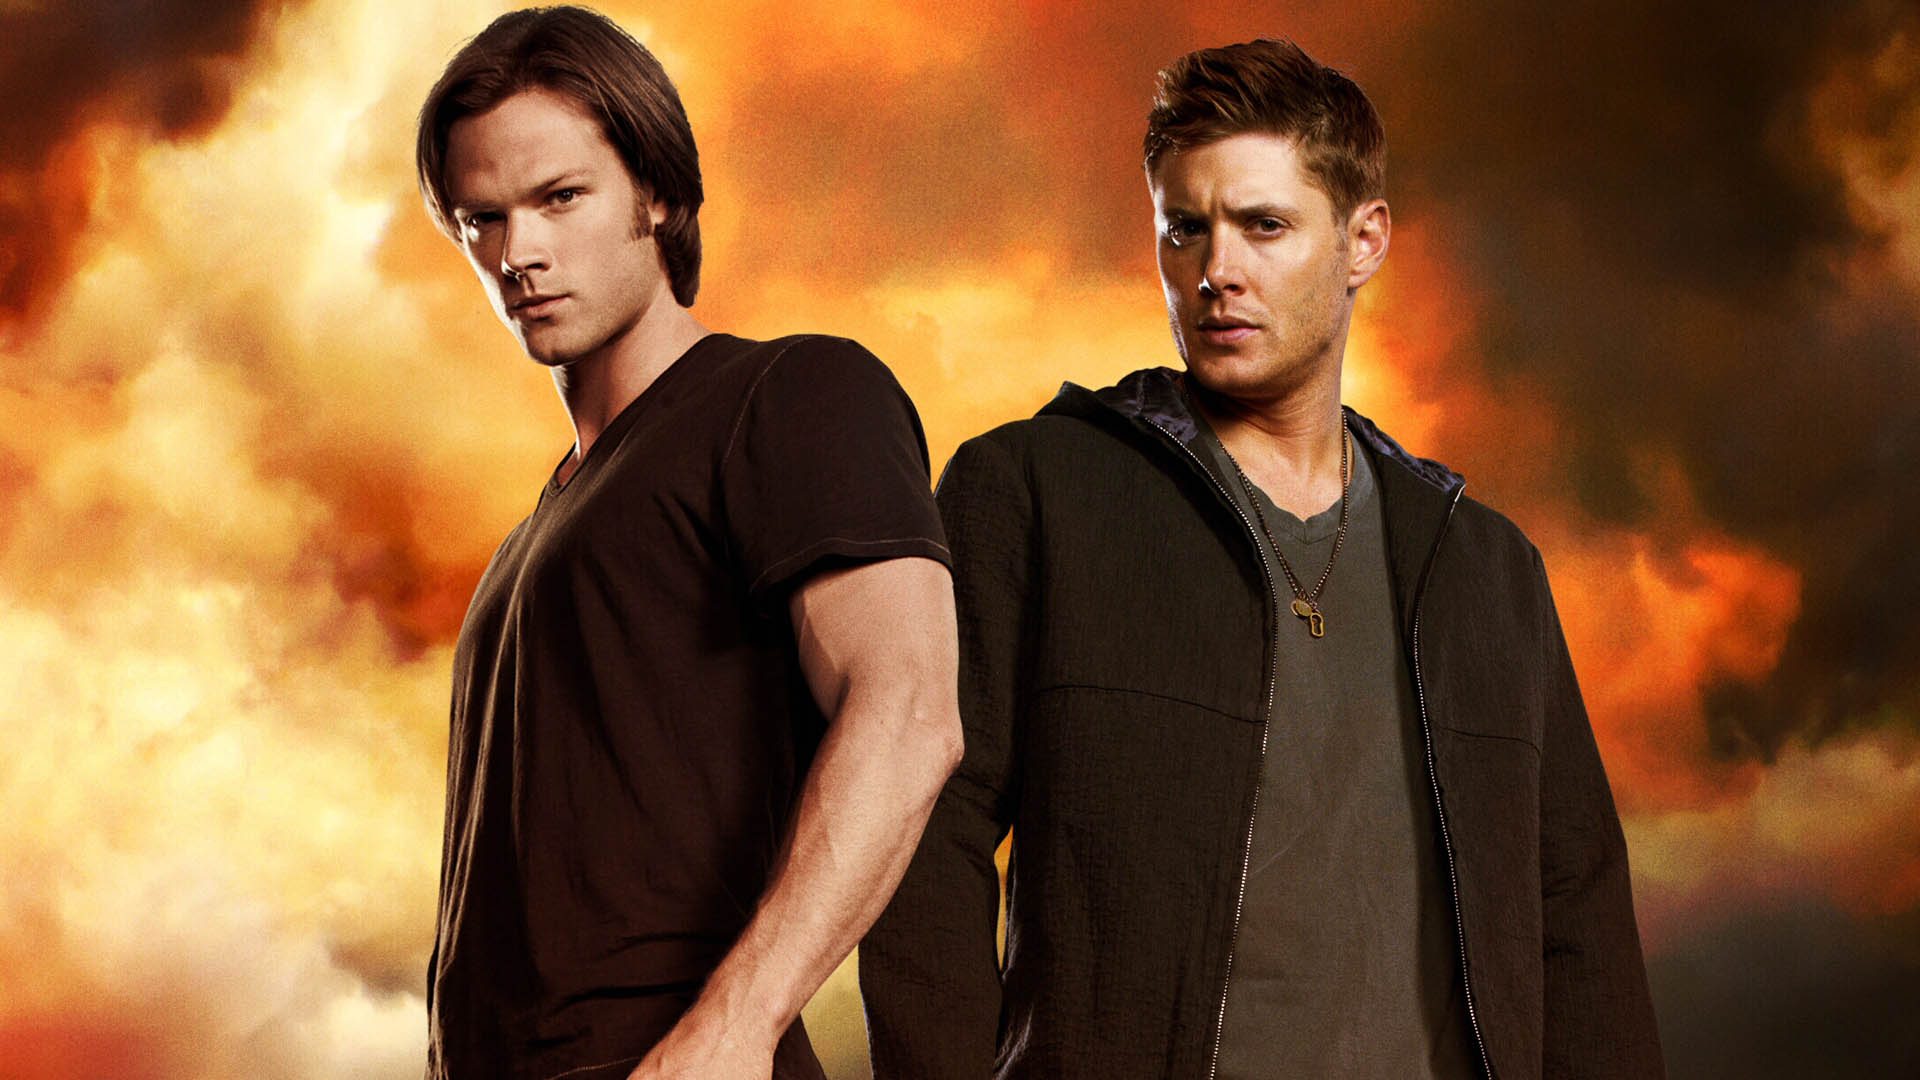 Supernatural hd wallpapers pictures images supernatural hd full hd wallpaper voltagebd Image collections